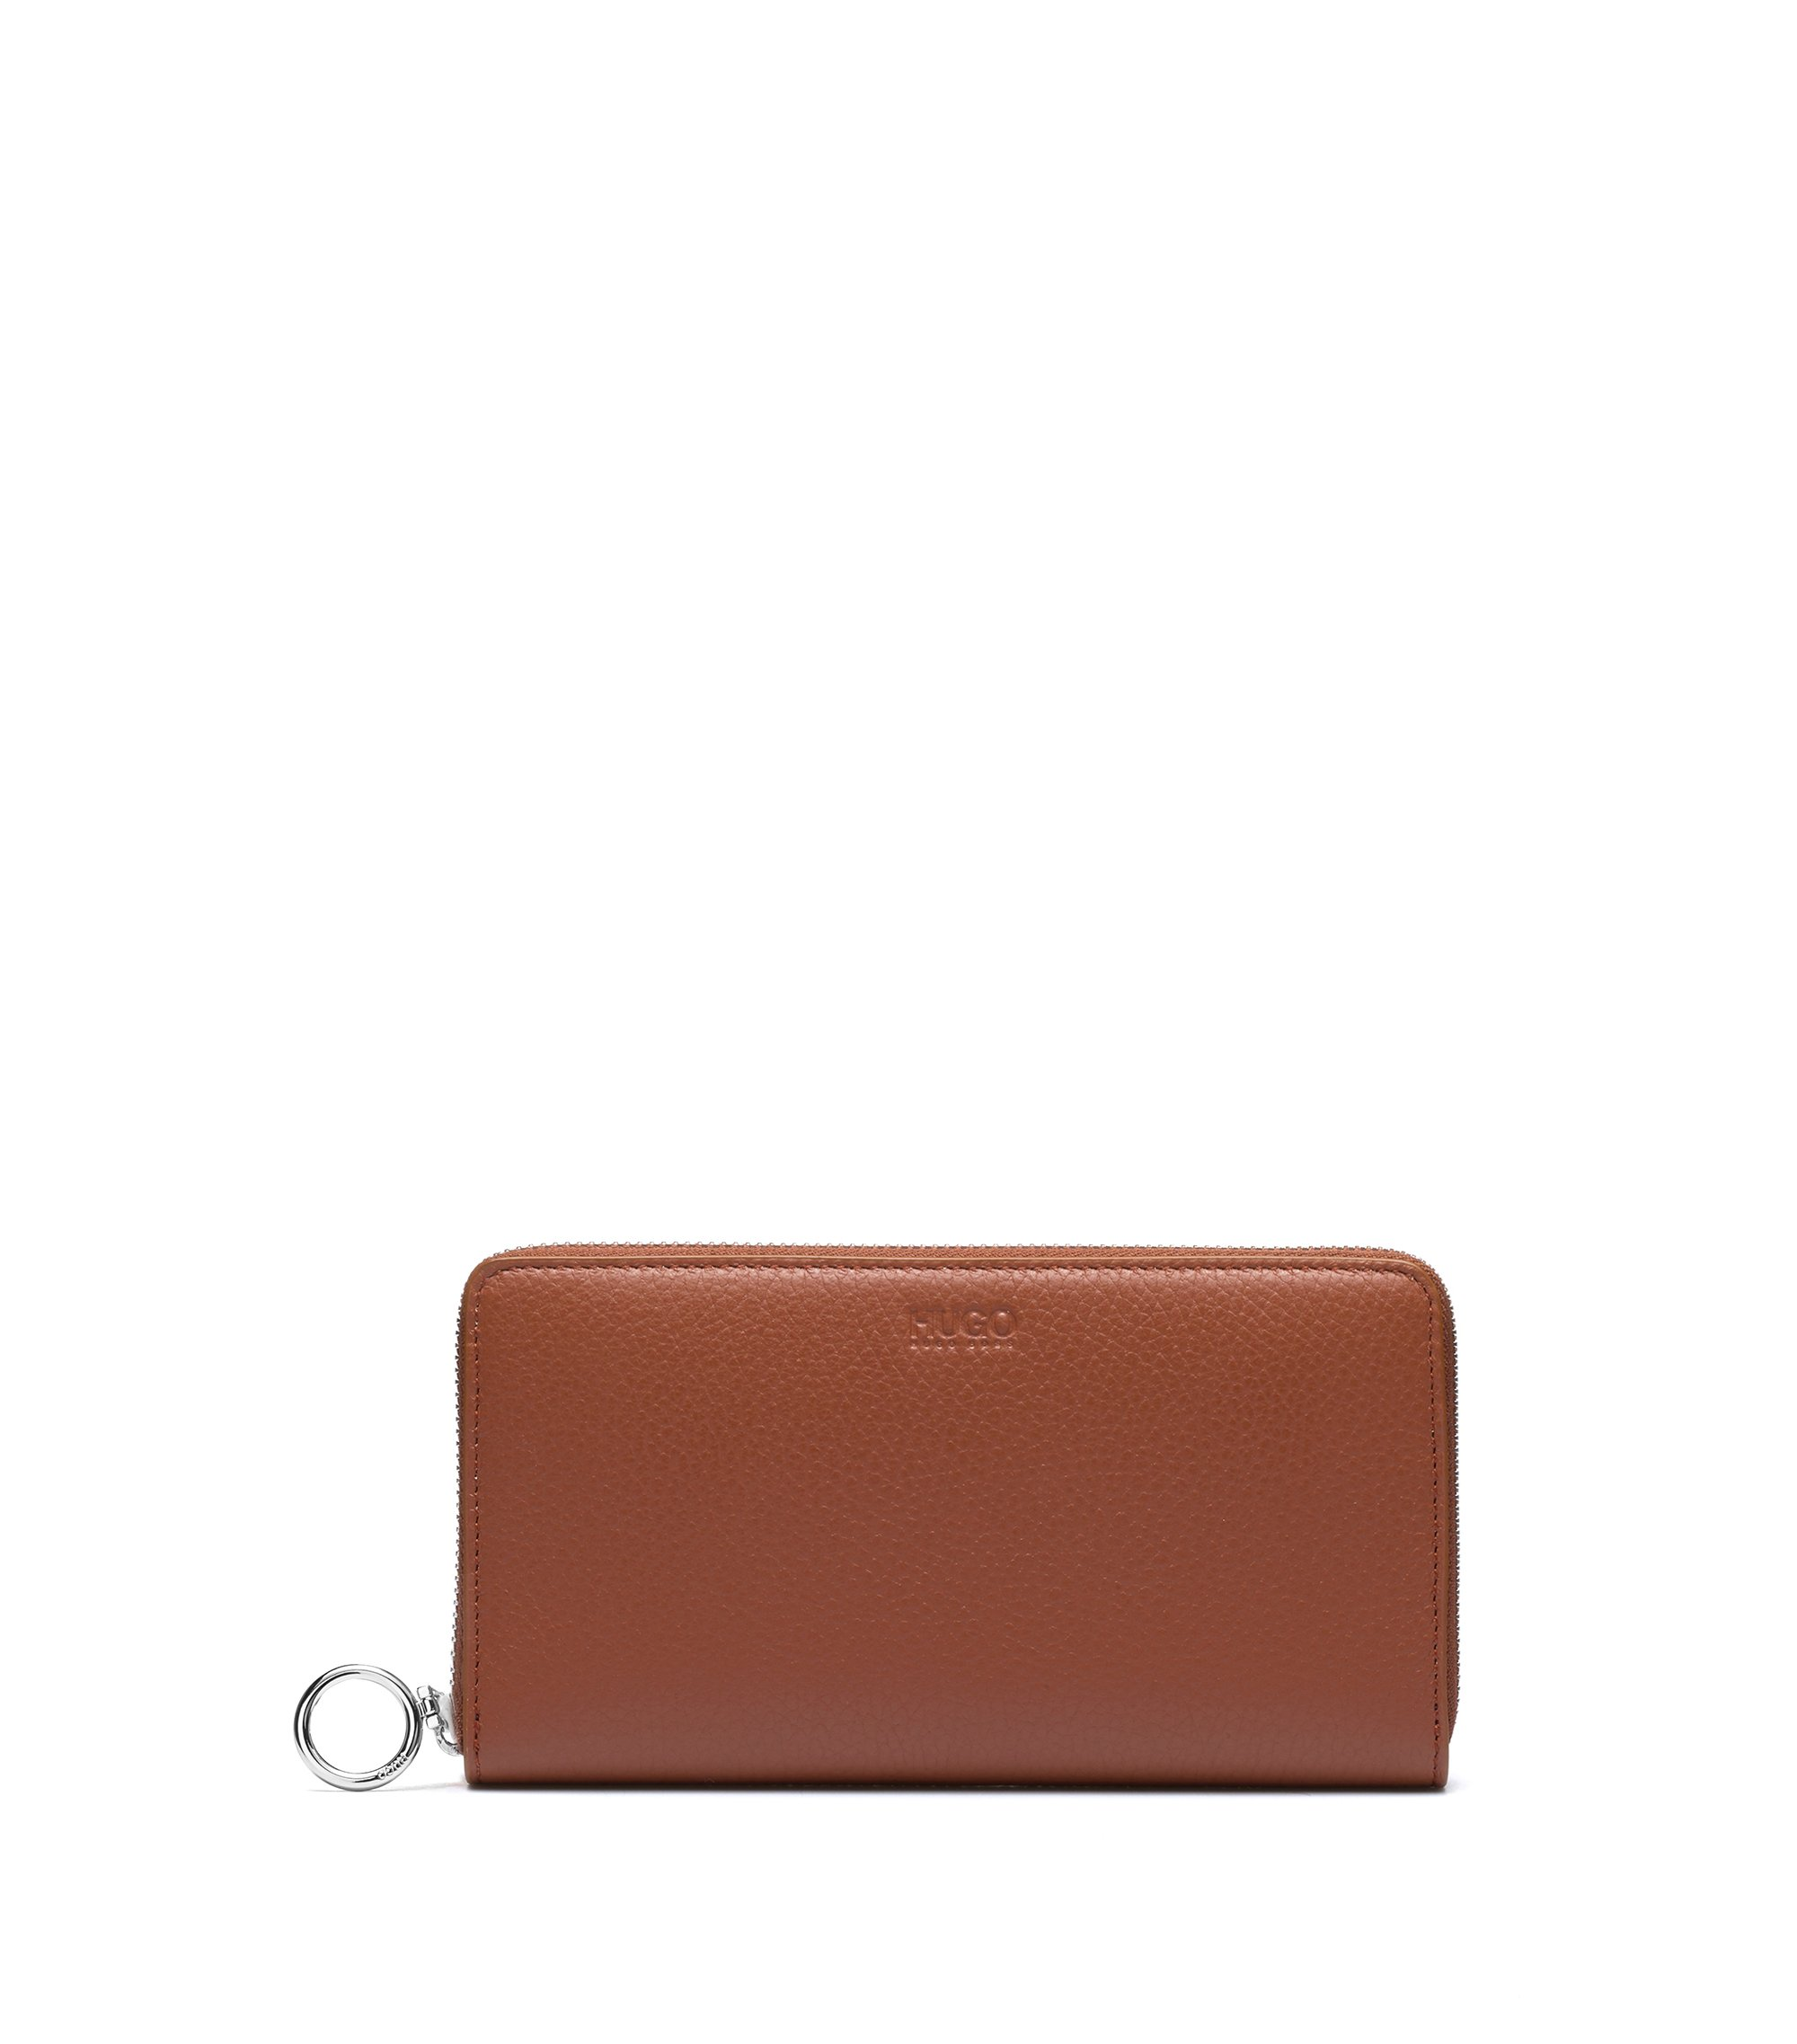 Zip-around wallet in grained leather, Brown